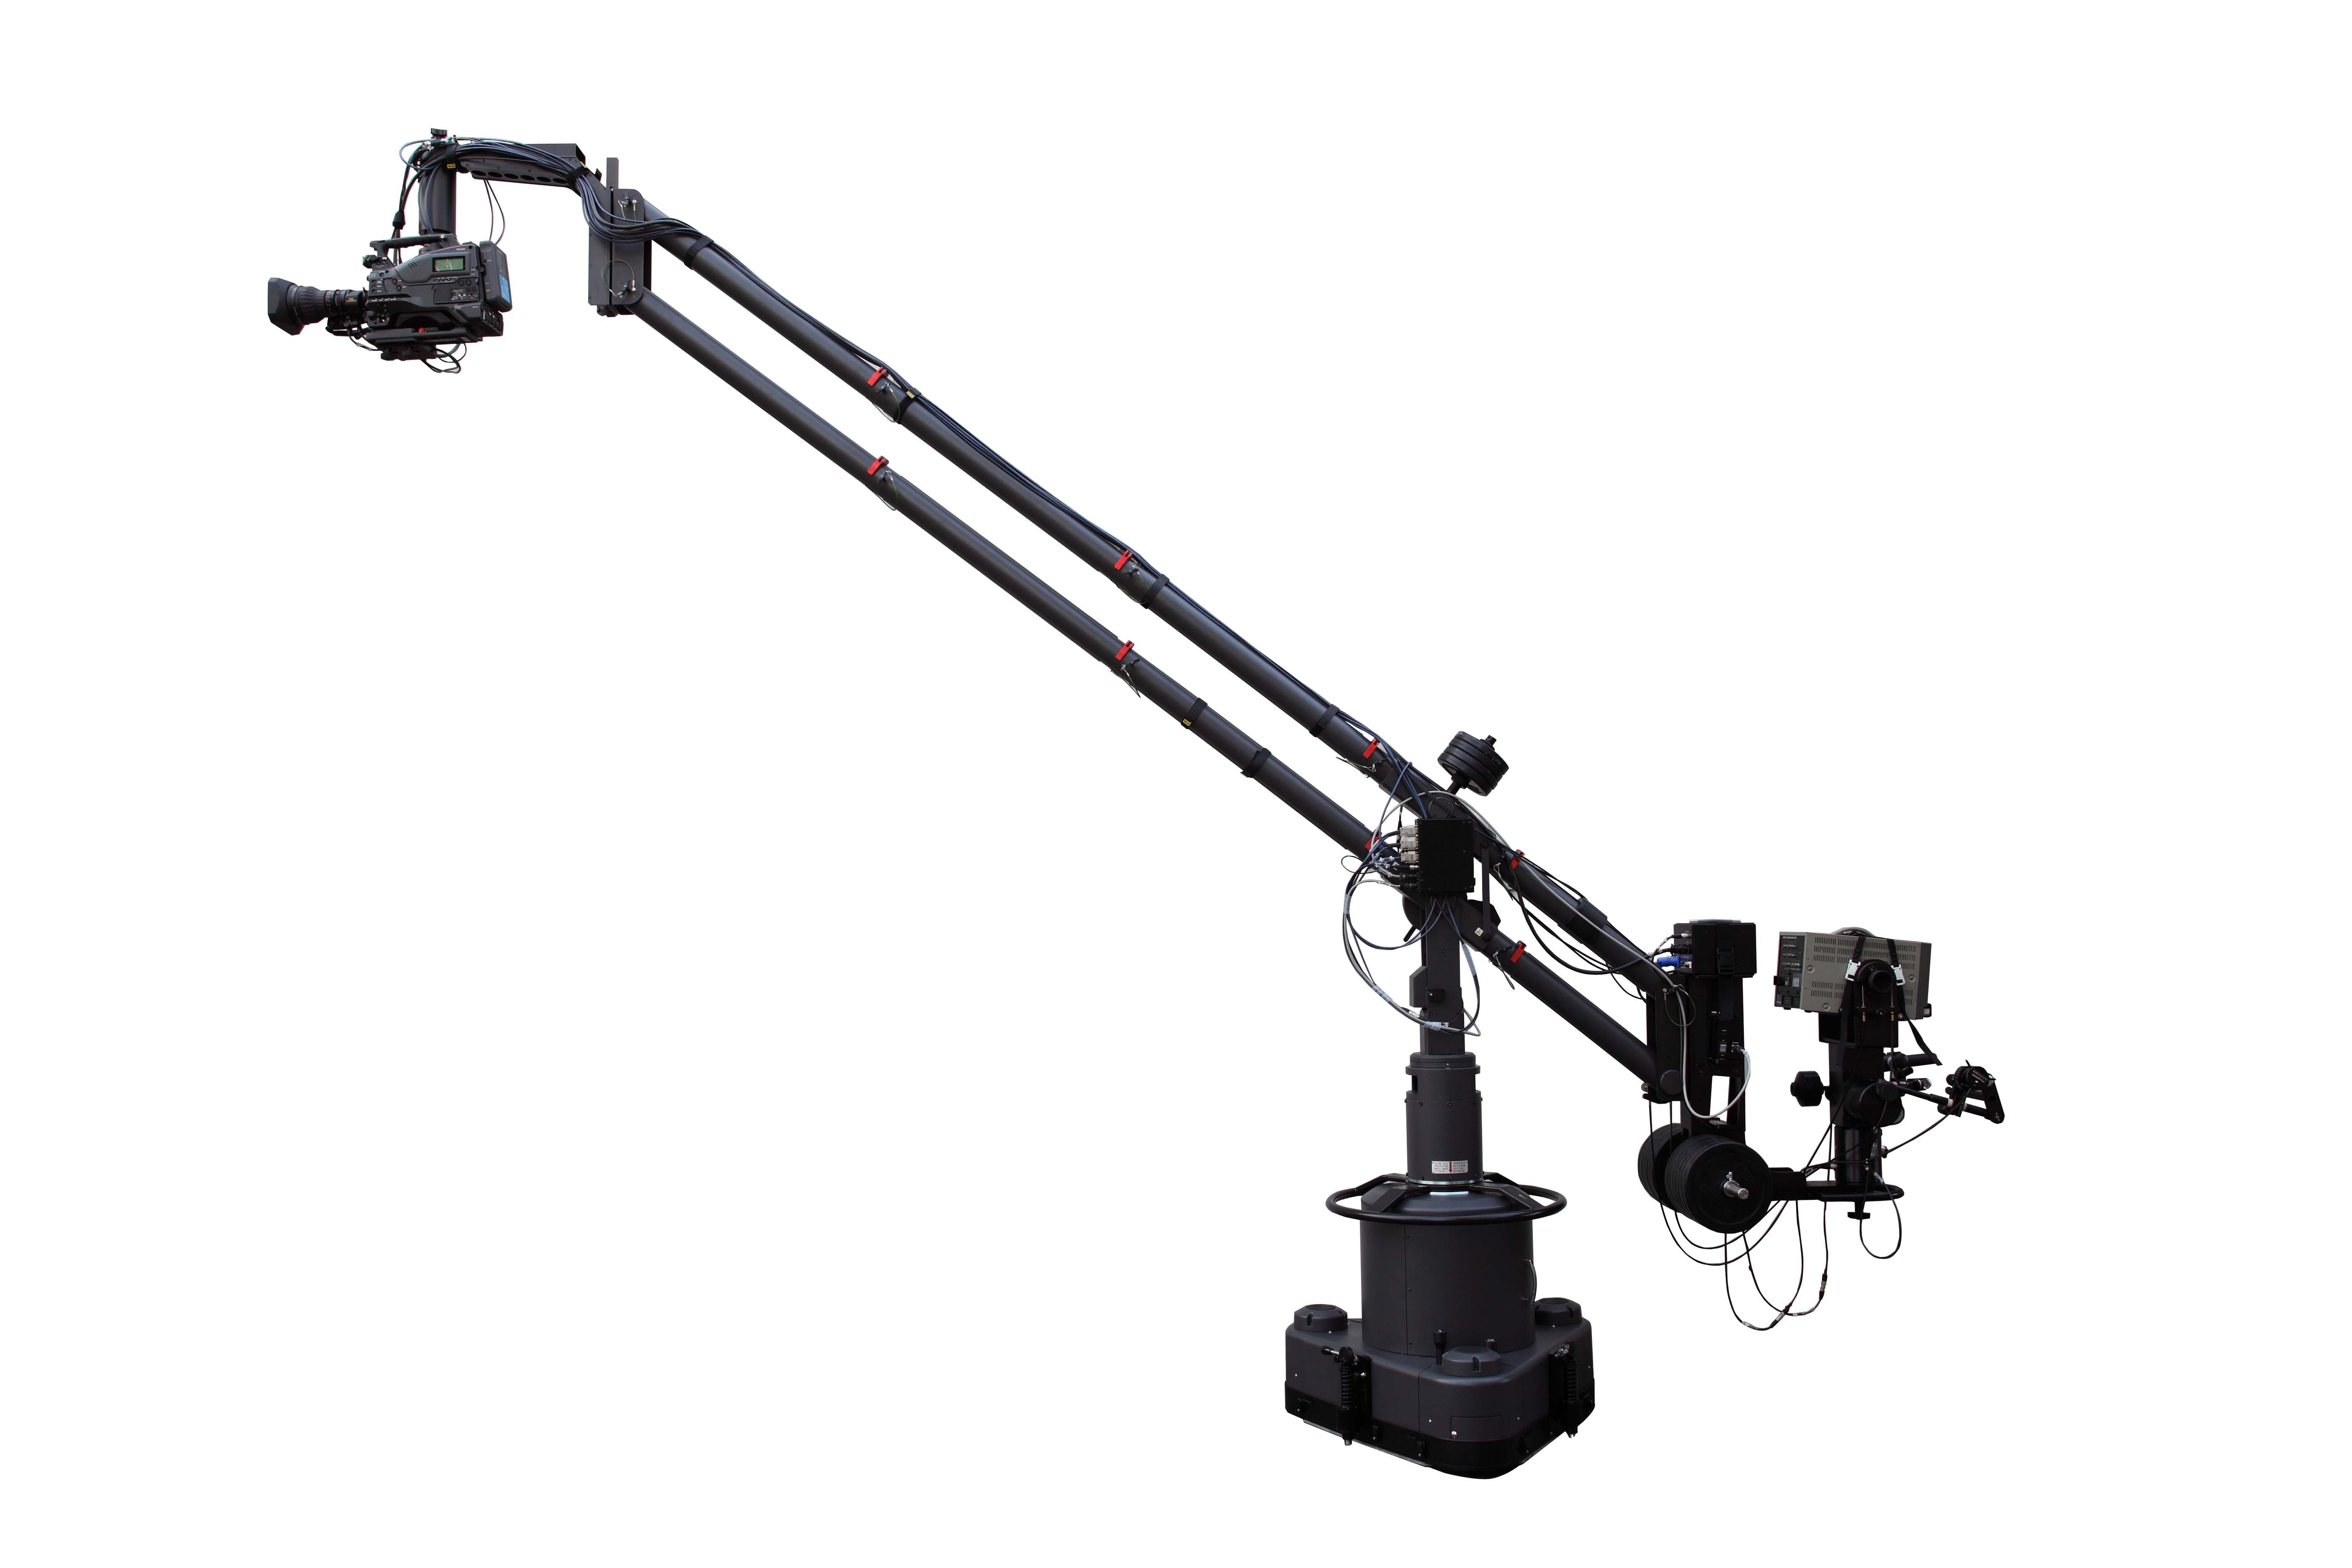 Shotoku Broadcast Systems To Unveil Revolutionary New  Camera Tracking System At 2014 NAB Show 4